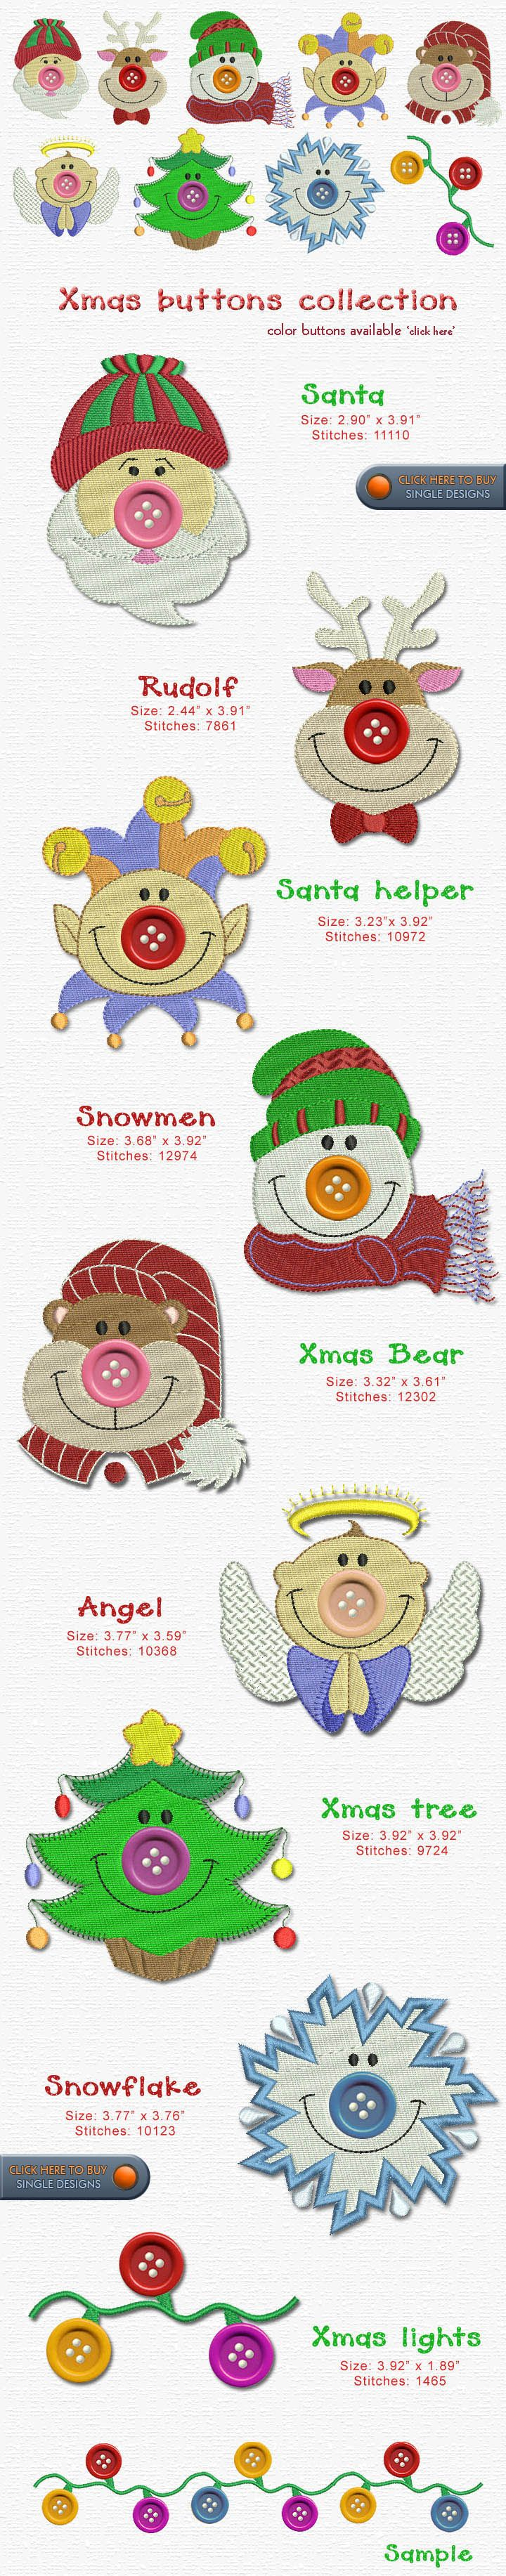 CHRISTMAS Embroidery Designs Free Embroidery Design Patterns Applique